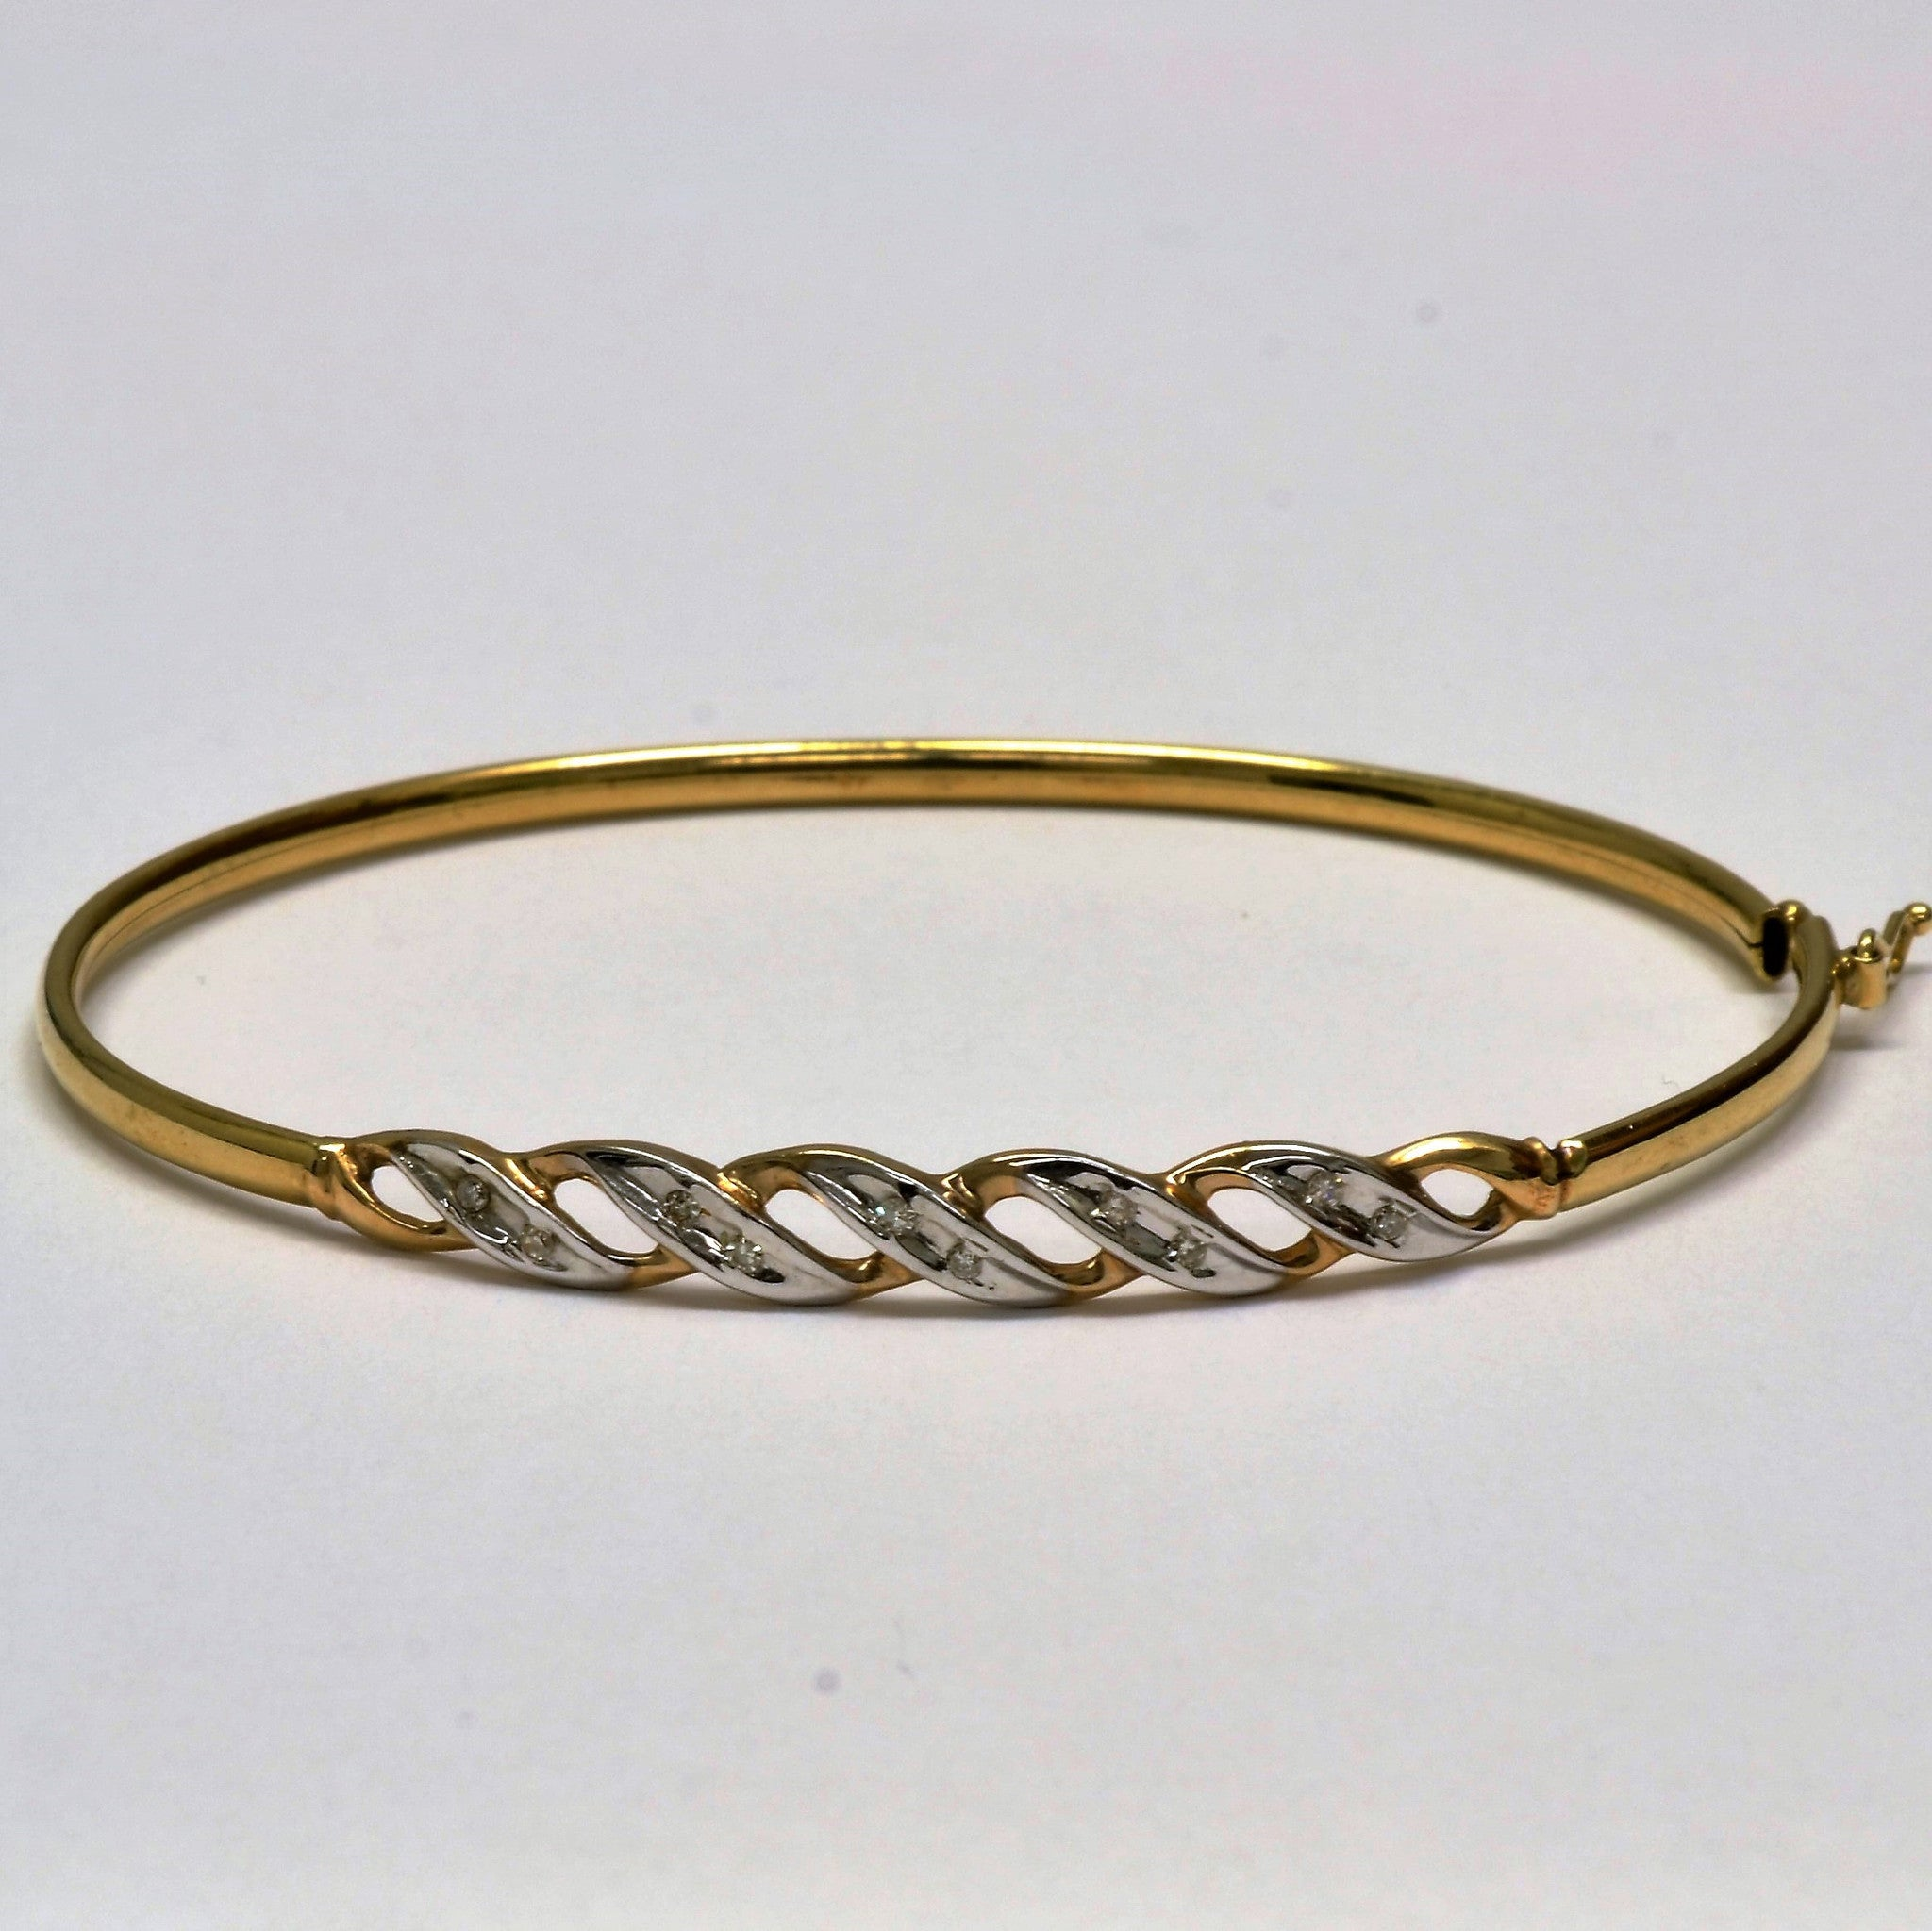 Diamond Spiral Bangle Bracelet | 0.10 ct, 7"